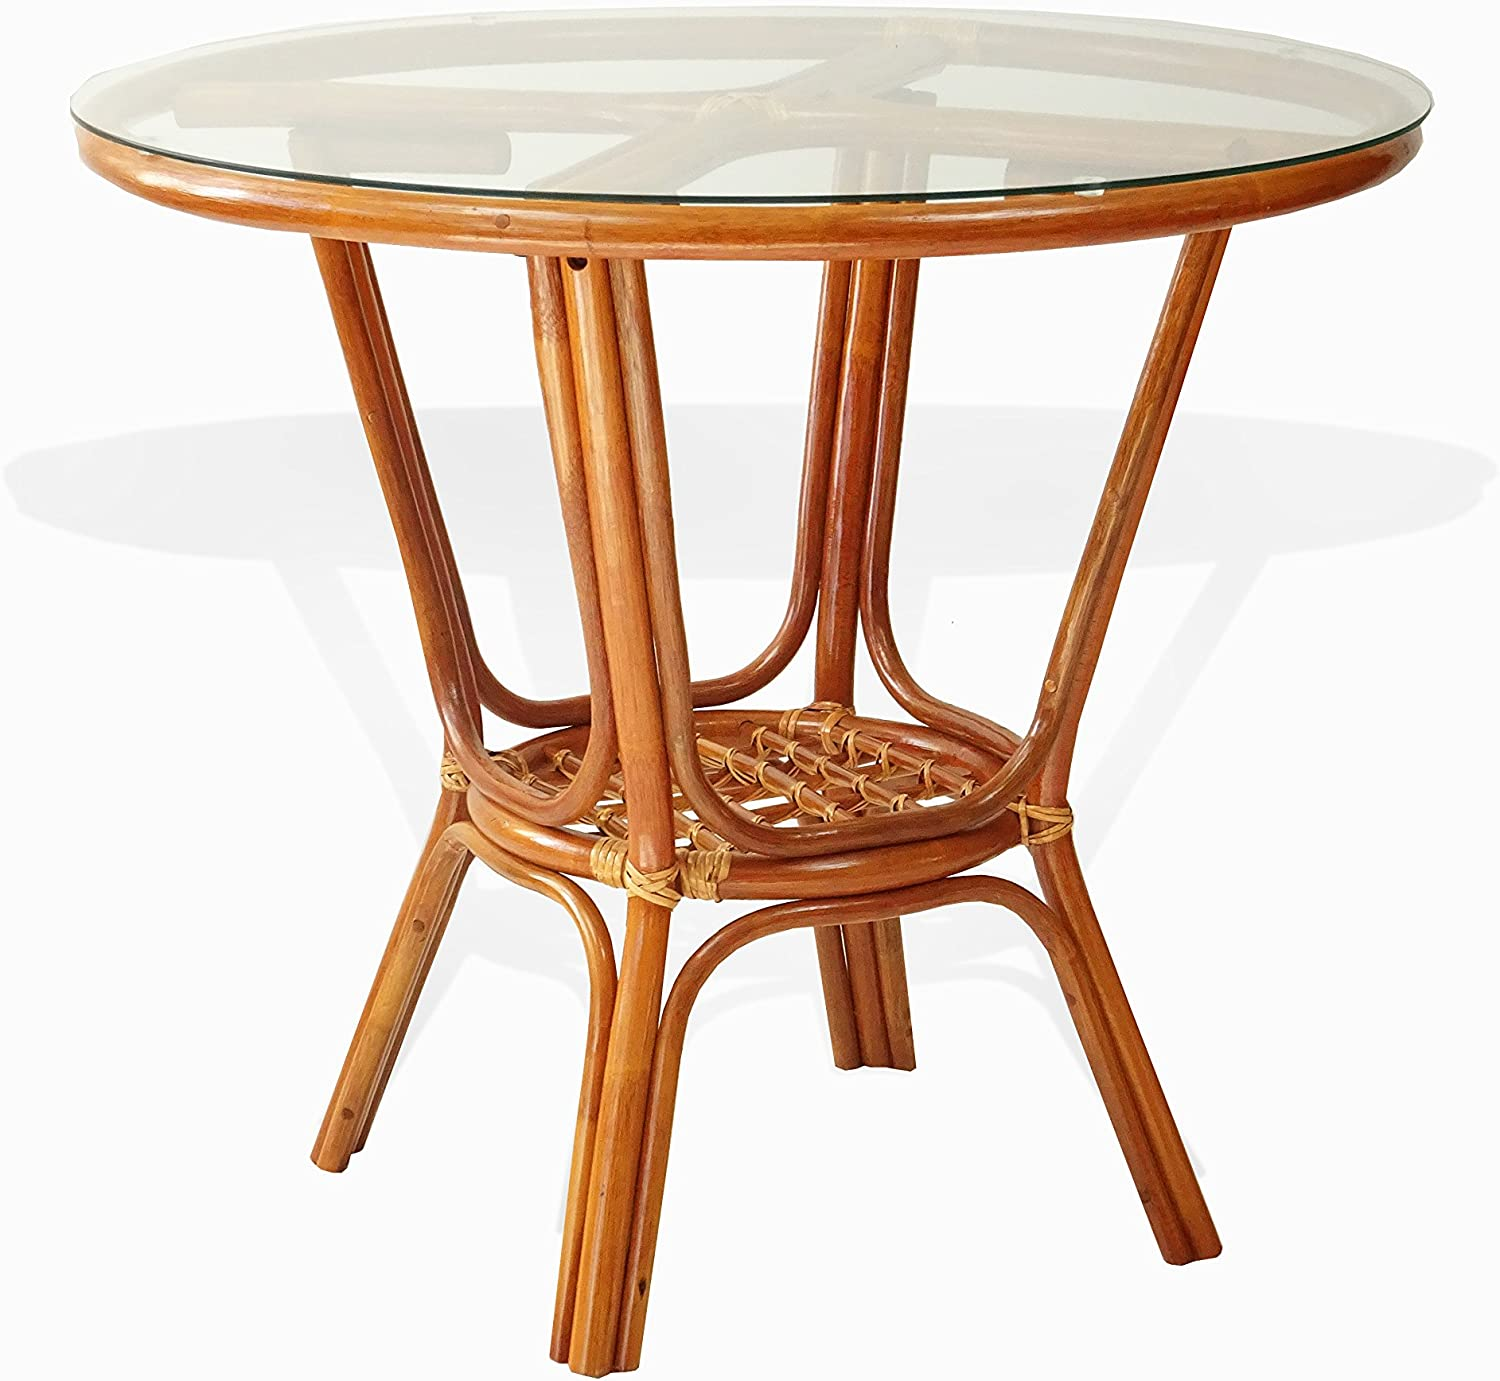 Pelangi Rattan Wicker Round Dining Table with Glass Top, Colonial